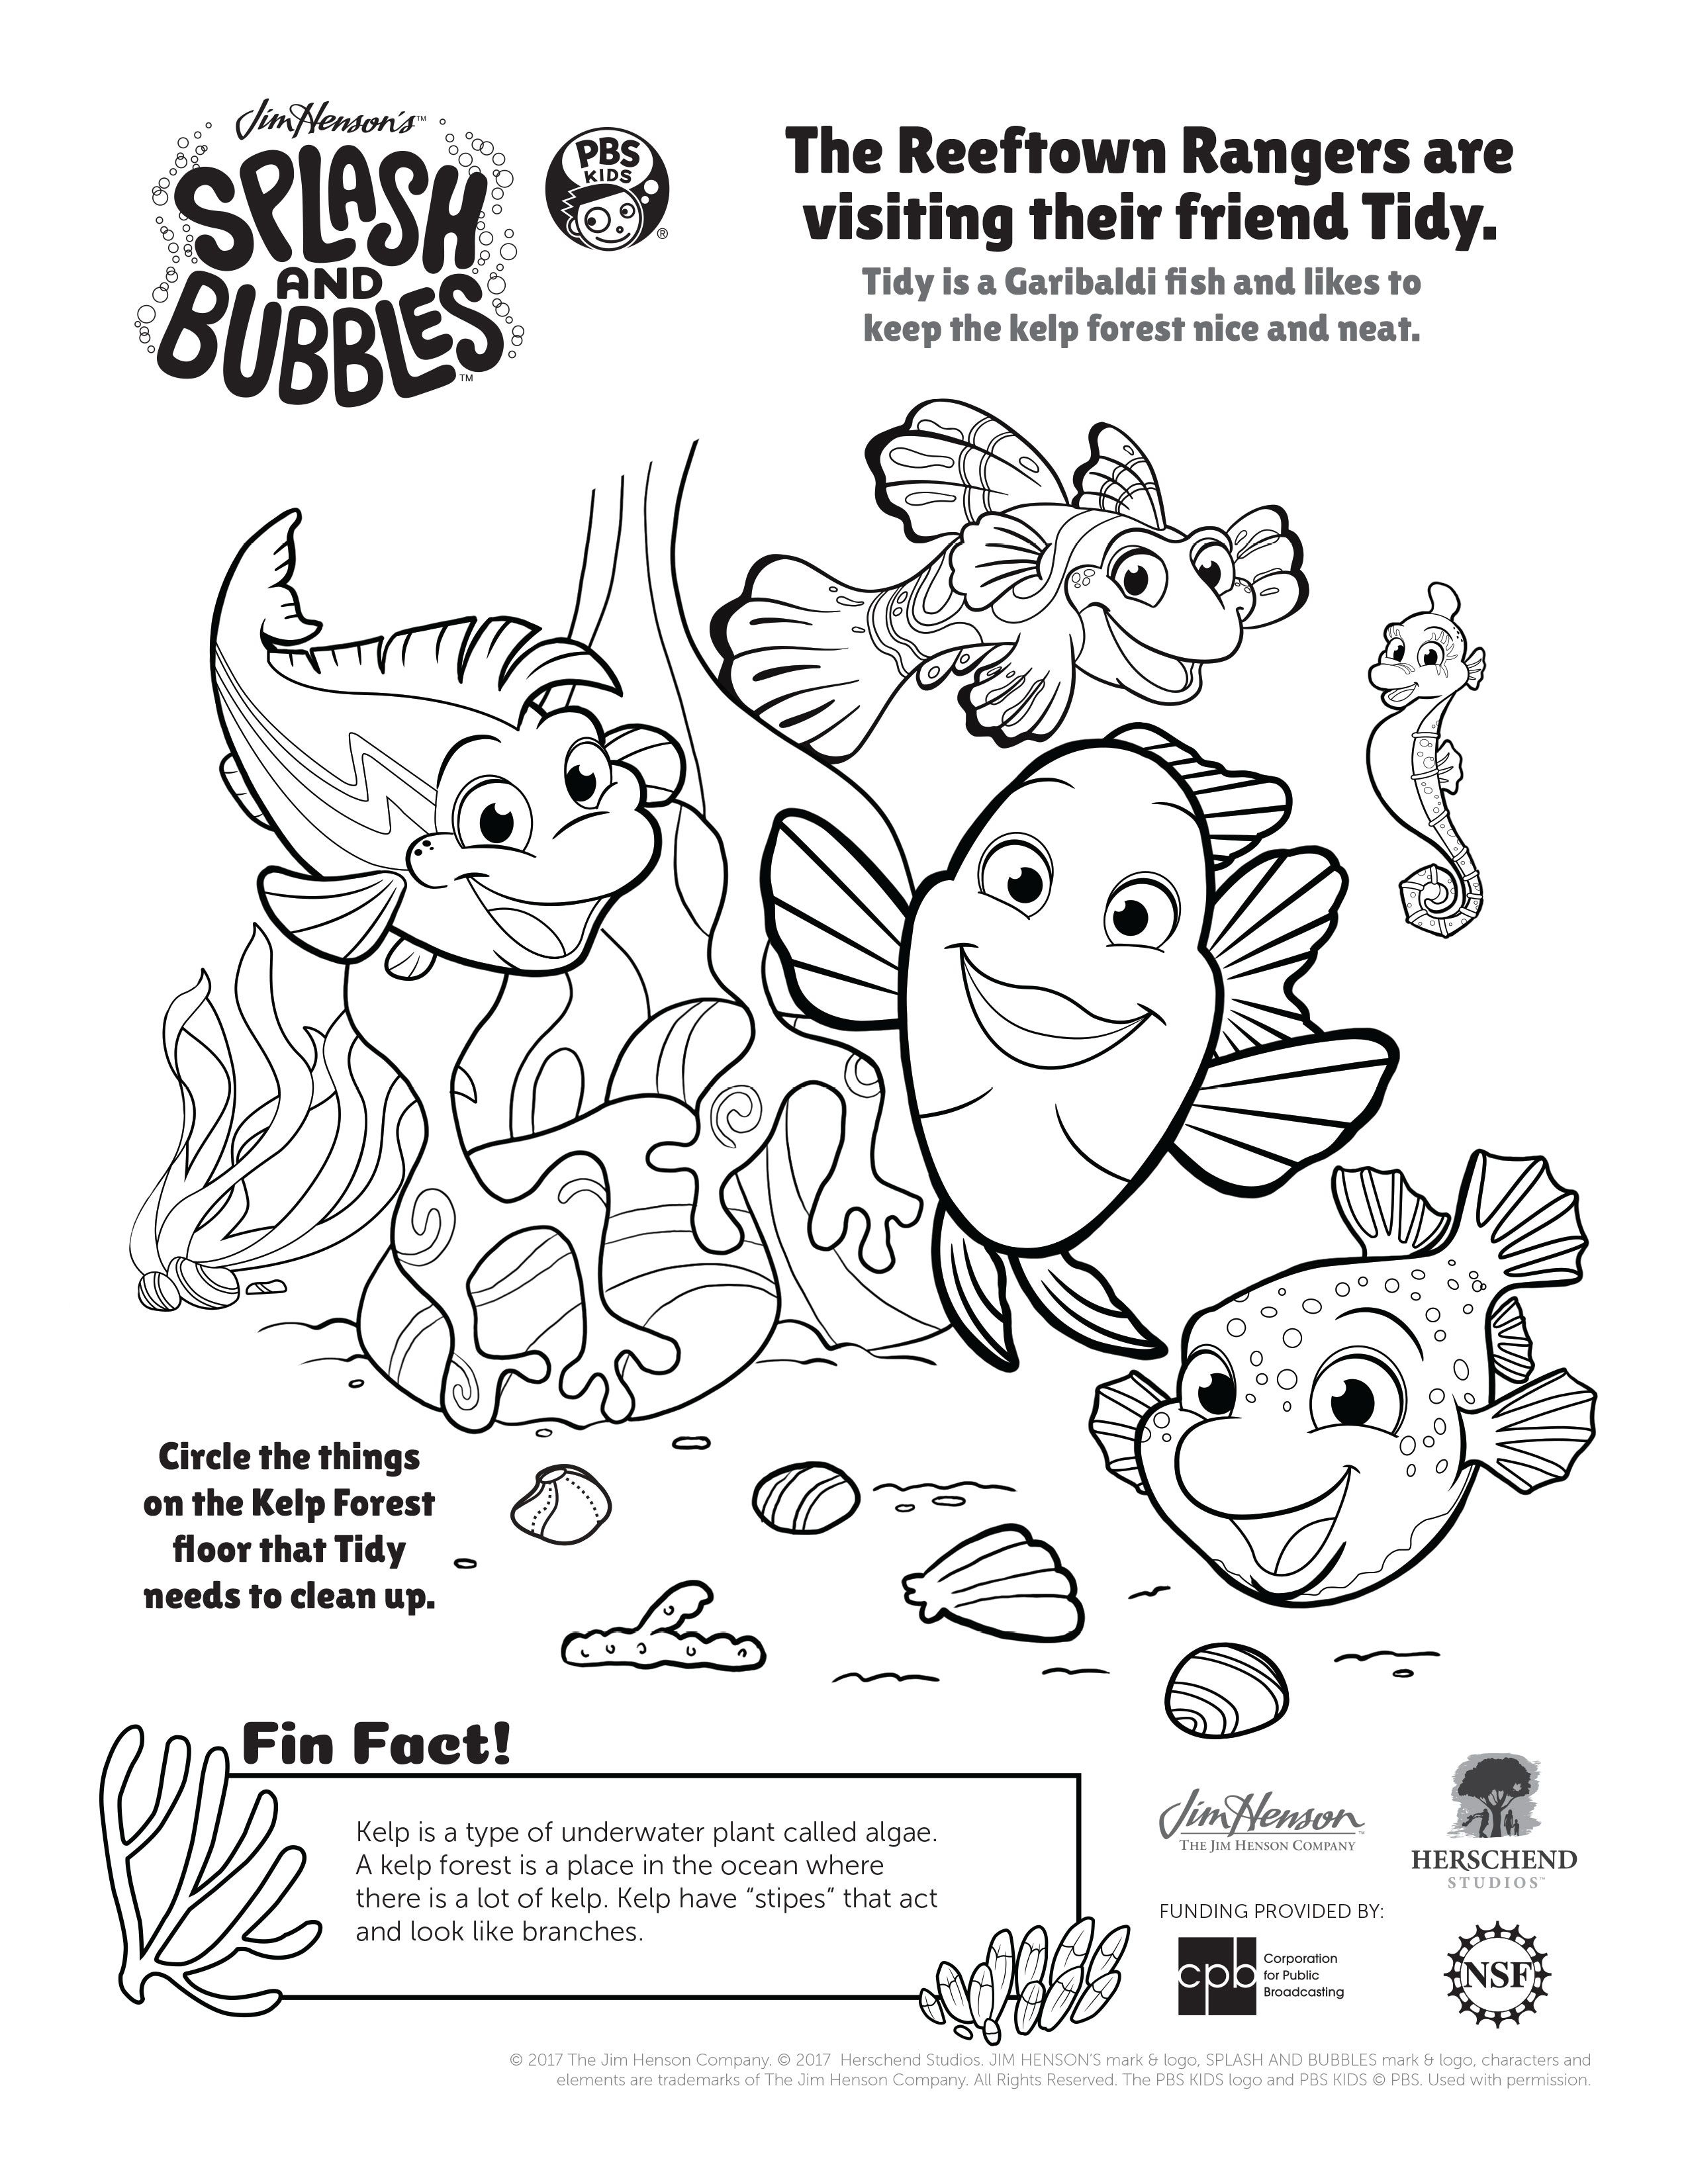 Goldfish Coloring Page Classy Design Ideas Goldfish Coloring Pages Best Coloring Ideas